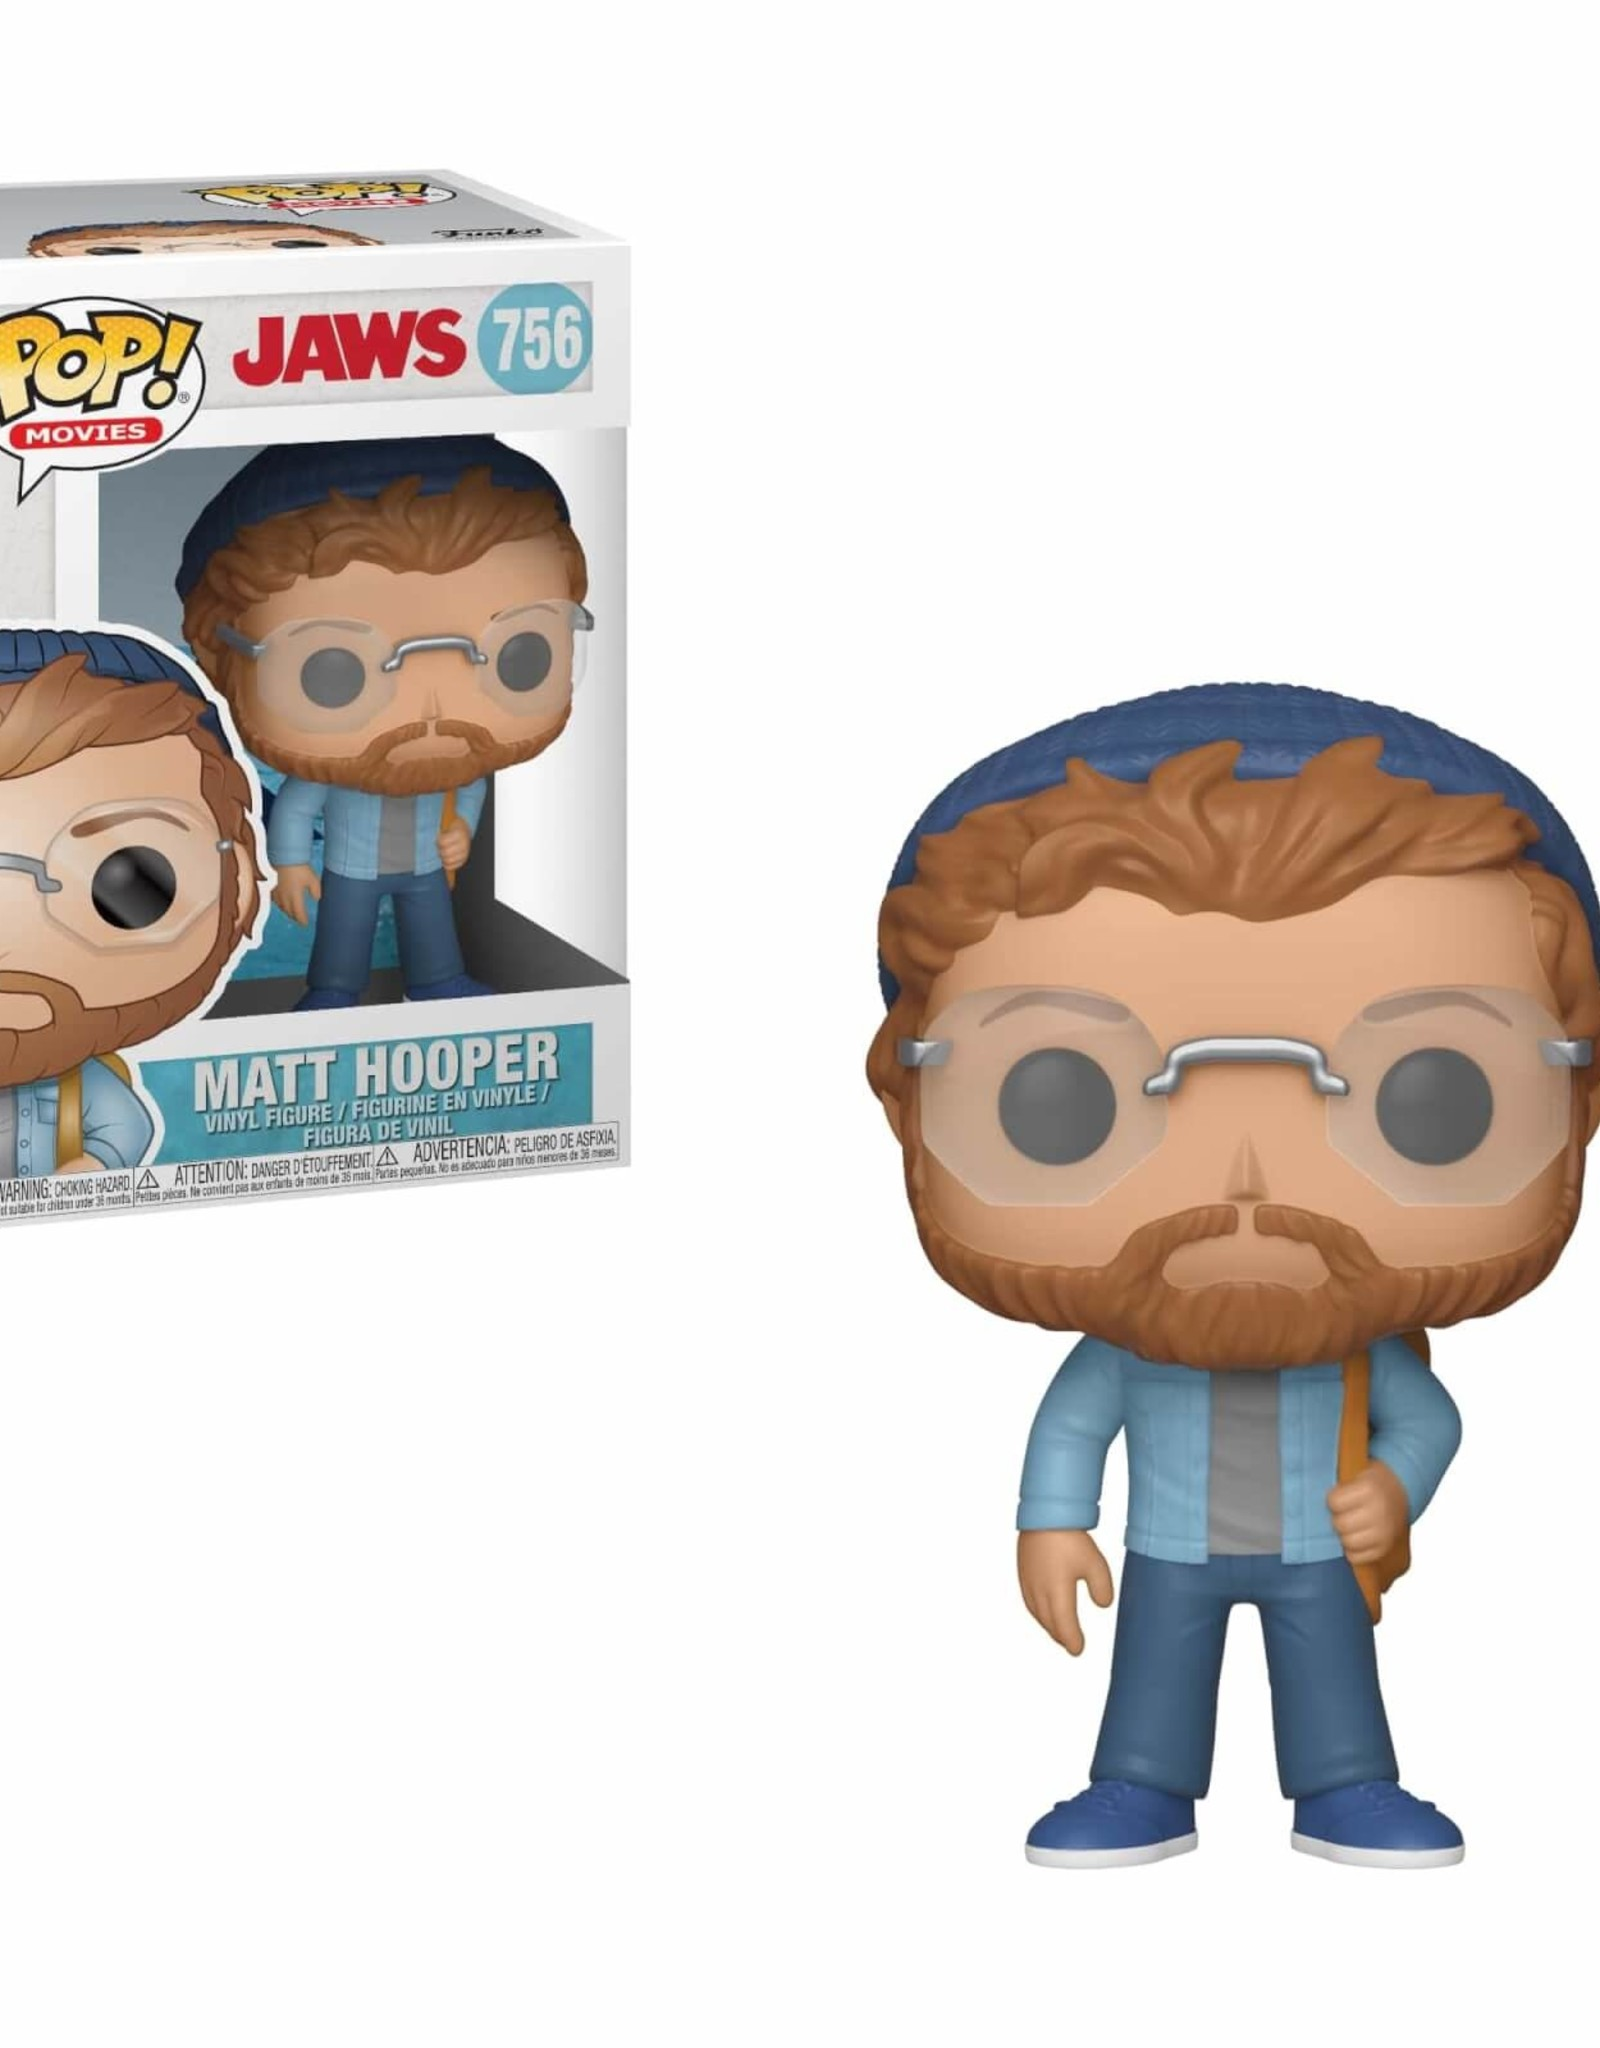 FUNKO POP JAWS MATT HOOPER VINYL FIG